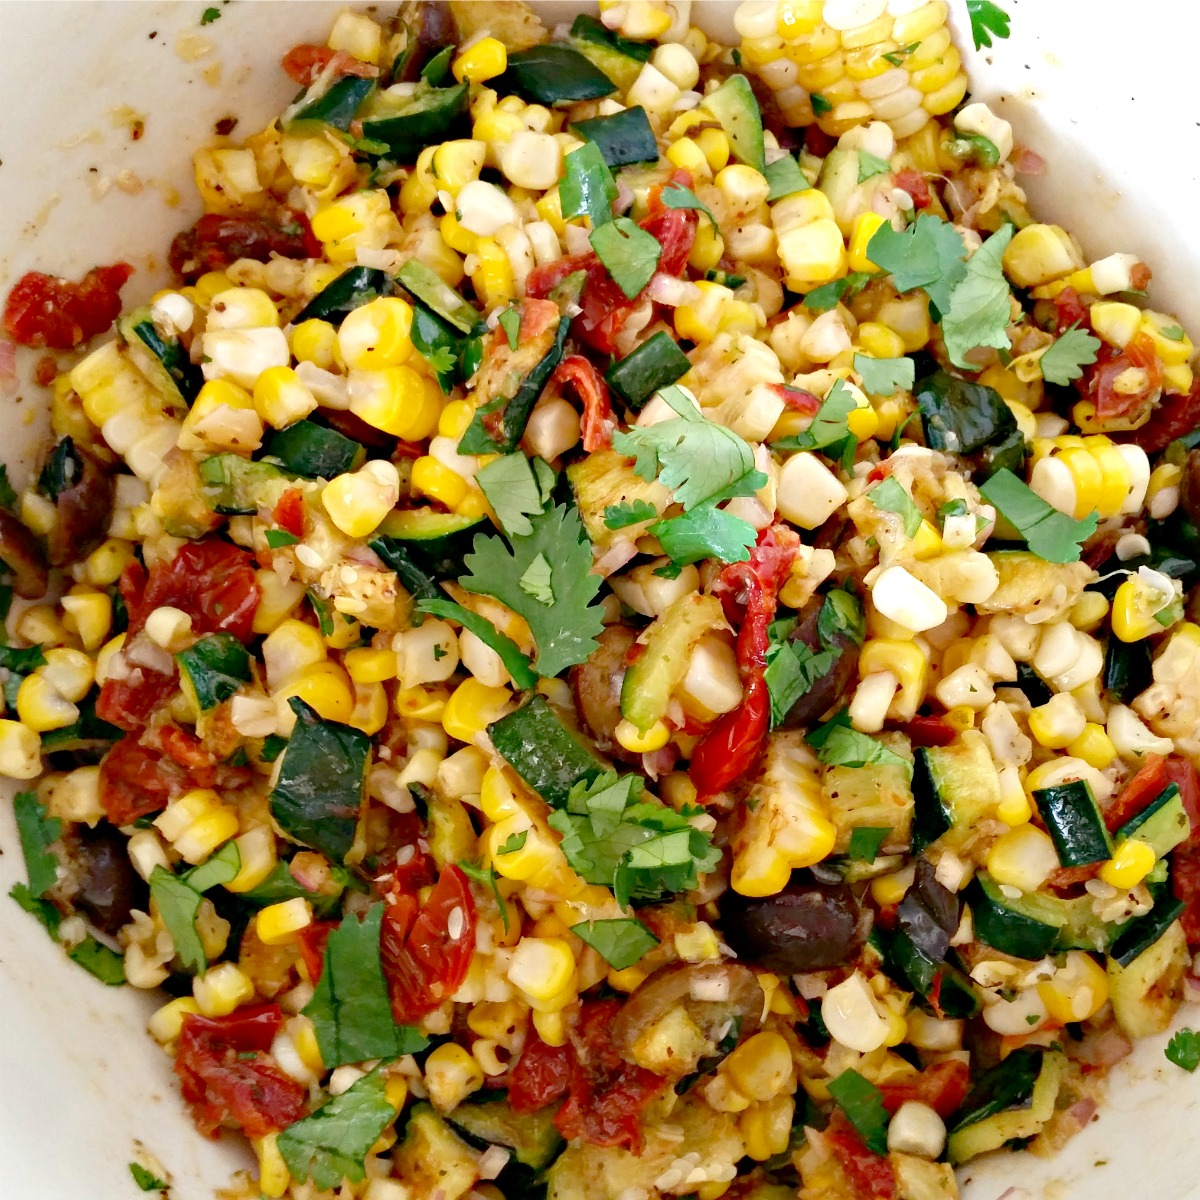 Summer Salad with Zucchini & Corn | Simply Sophisticated Cooking